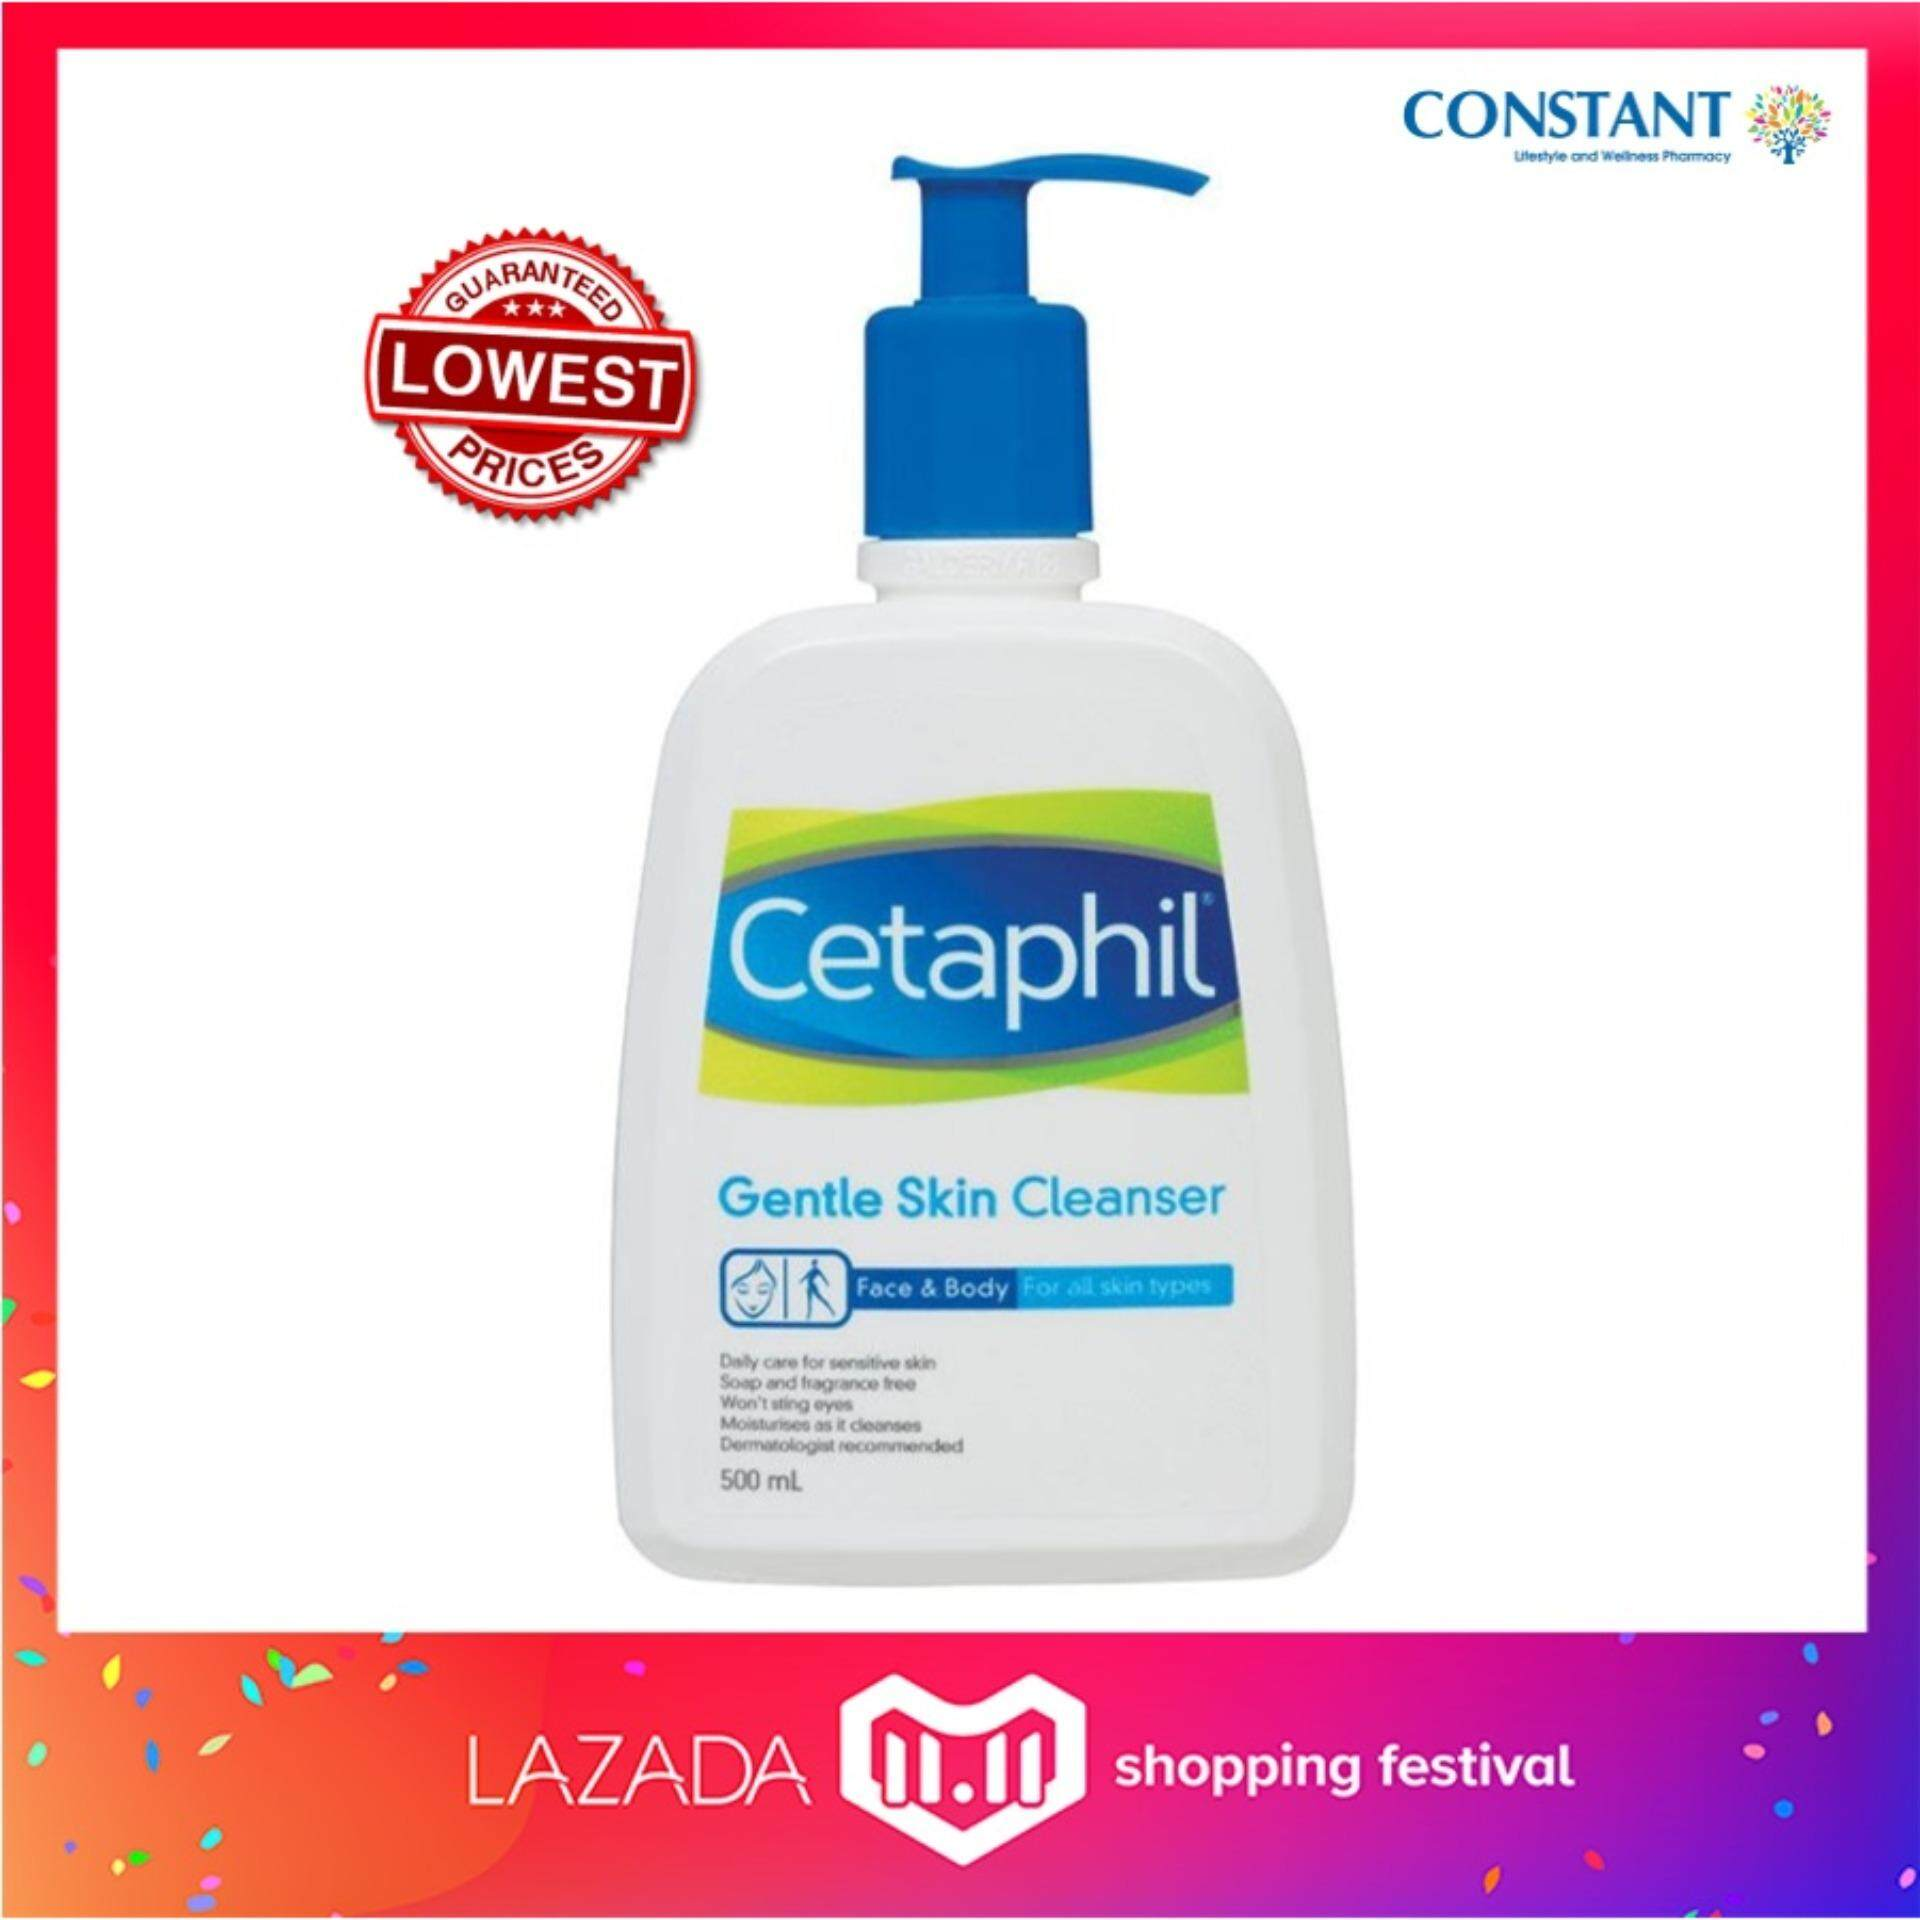 Cetaphil Products For The Best Price In Malaysia Moisturizing Cream Face Ampamp Body Gentle Skin Cleanser 500ml